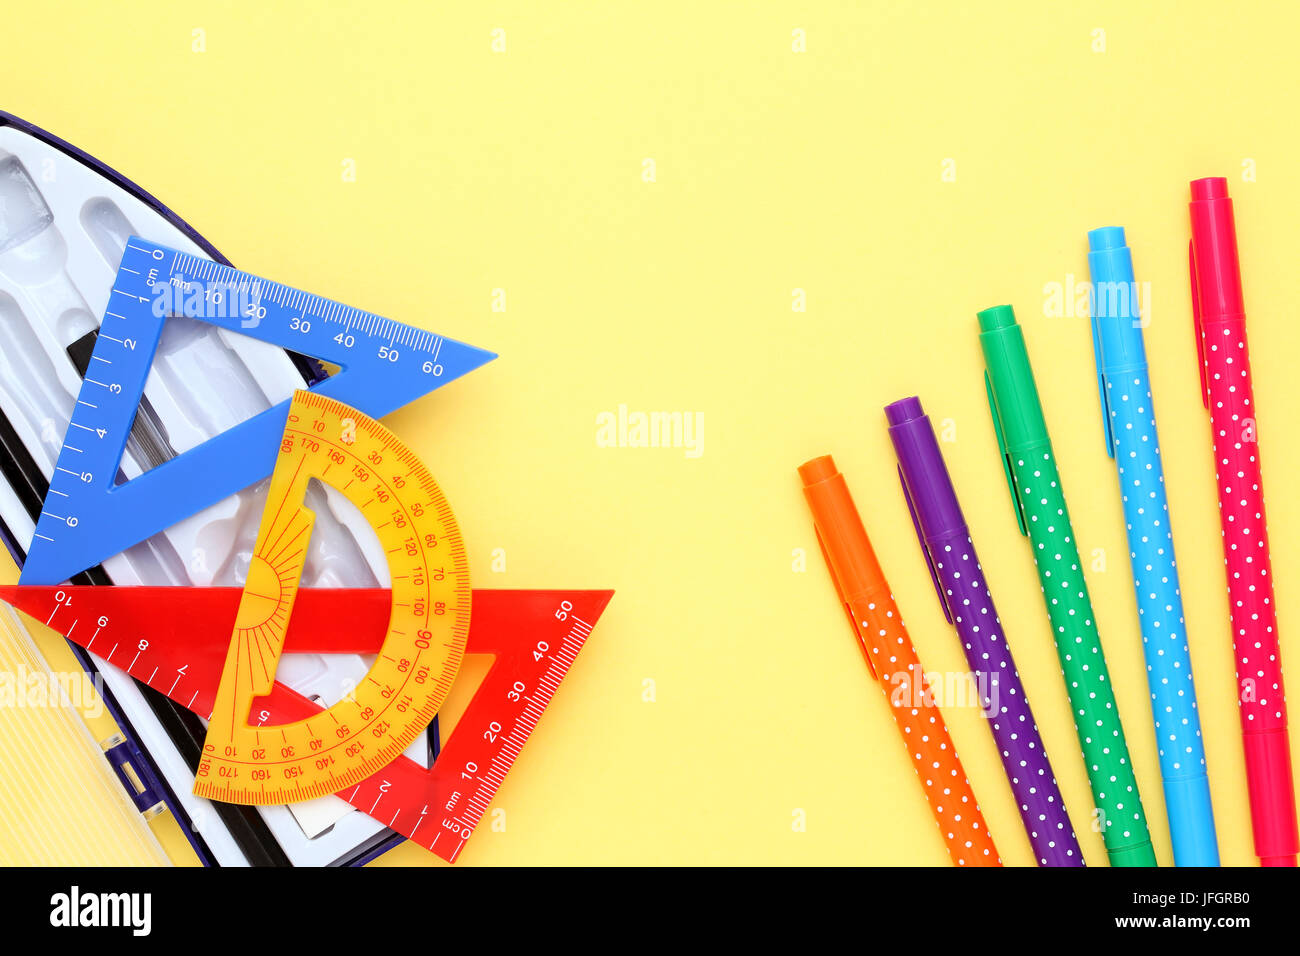 Multicolored rulers and pen on yellow background - Stock Image